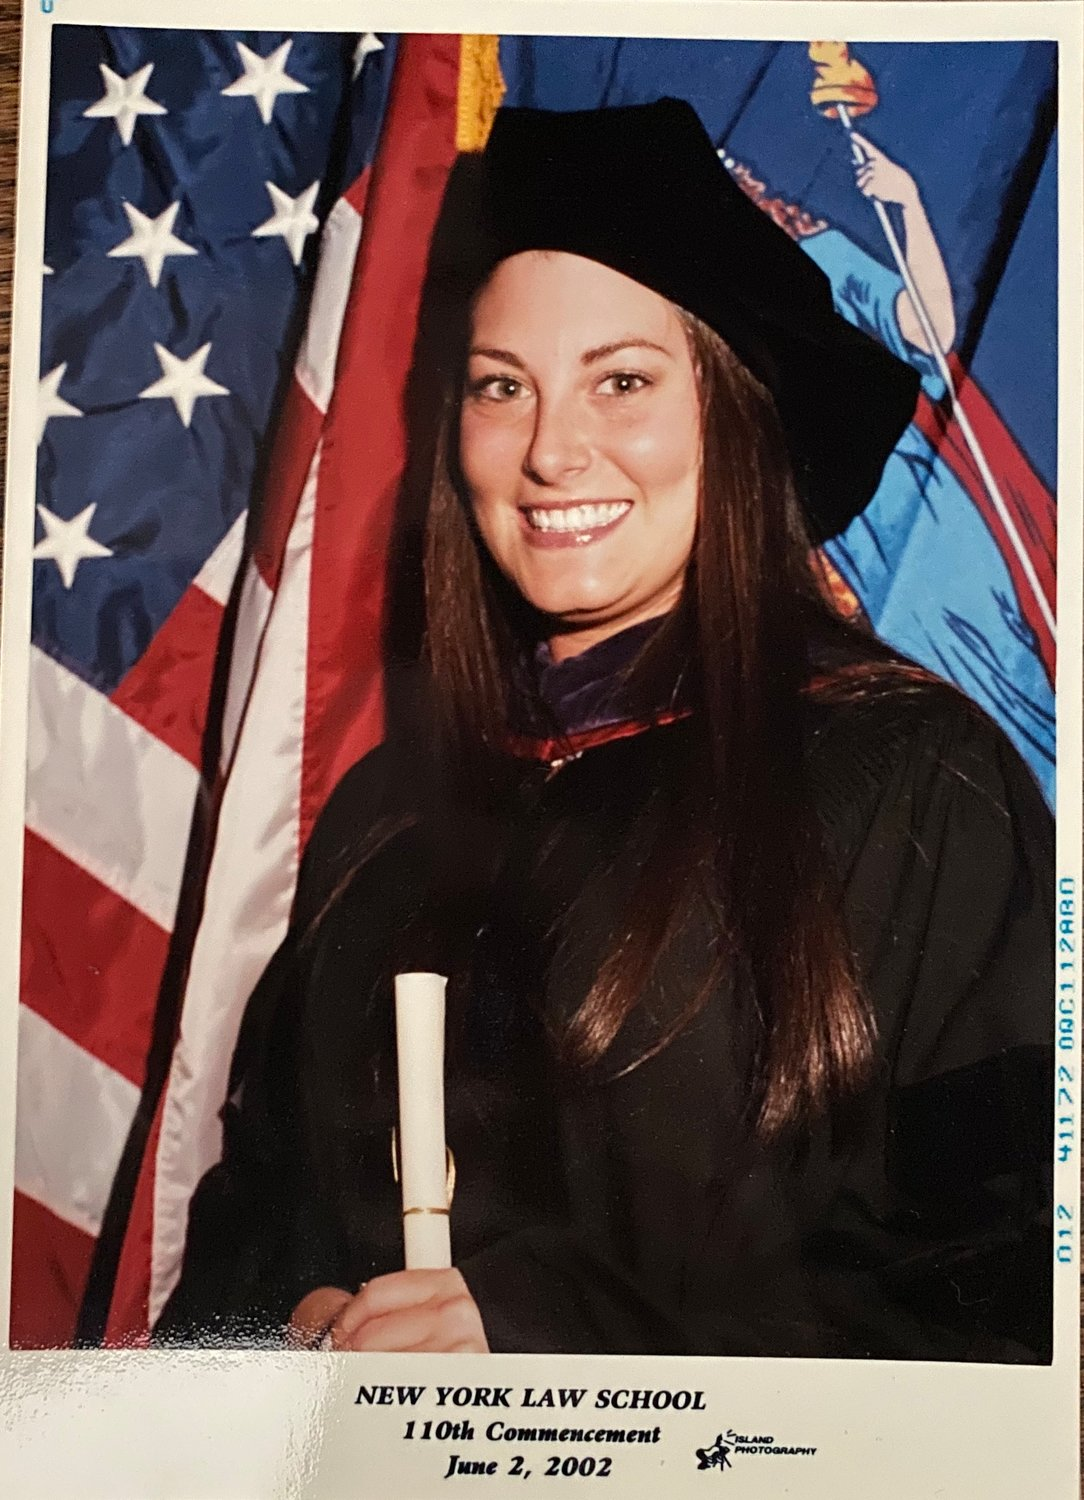 Sara Director, a Barasch McGarry Salzman & Penson partner from Locust Valley, graduated from New York Law School in Lower Manhattan in 2002. Director, along with her classmates, witnessed the attacks.